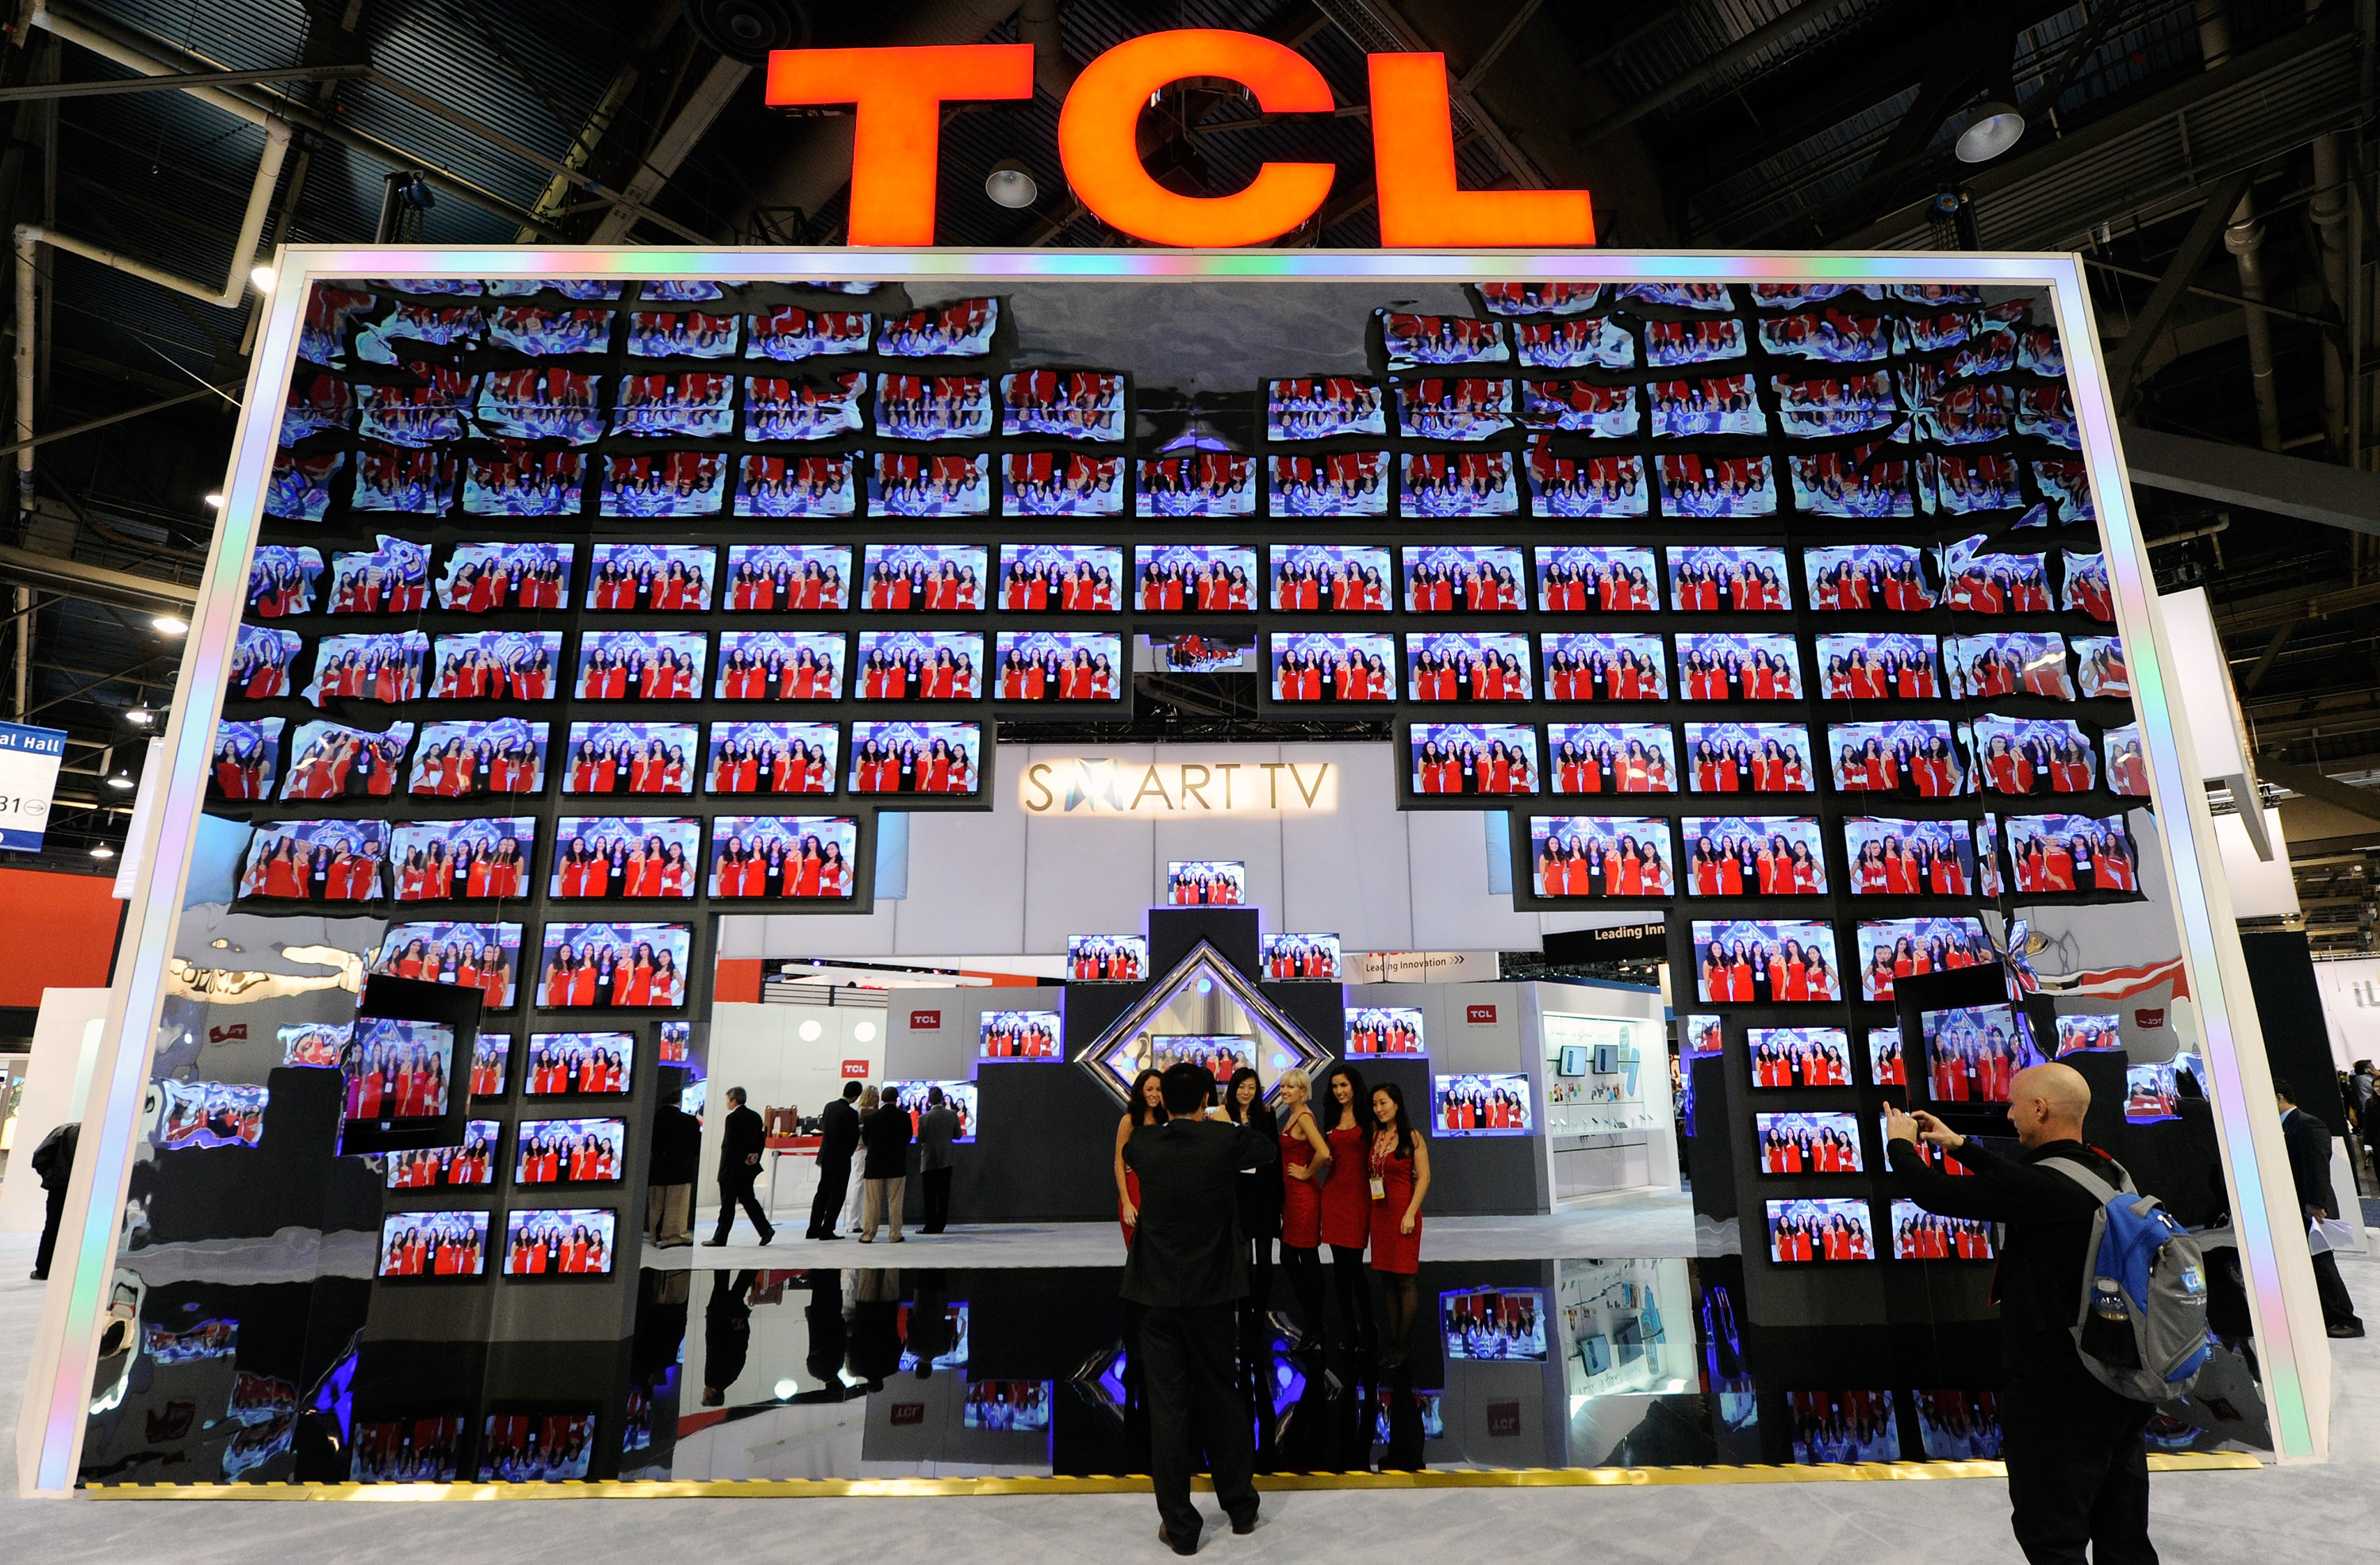 TCL ploughs more investment into smart devices | South China